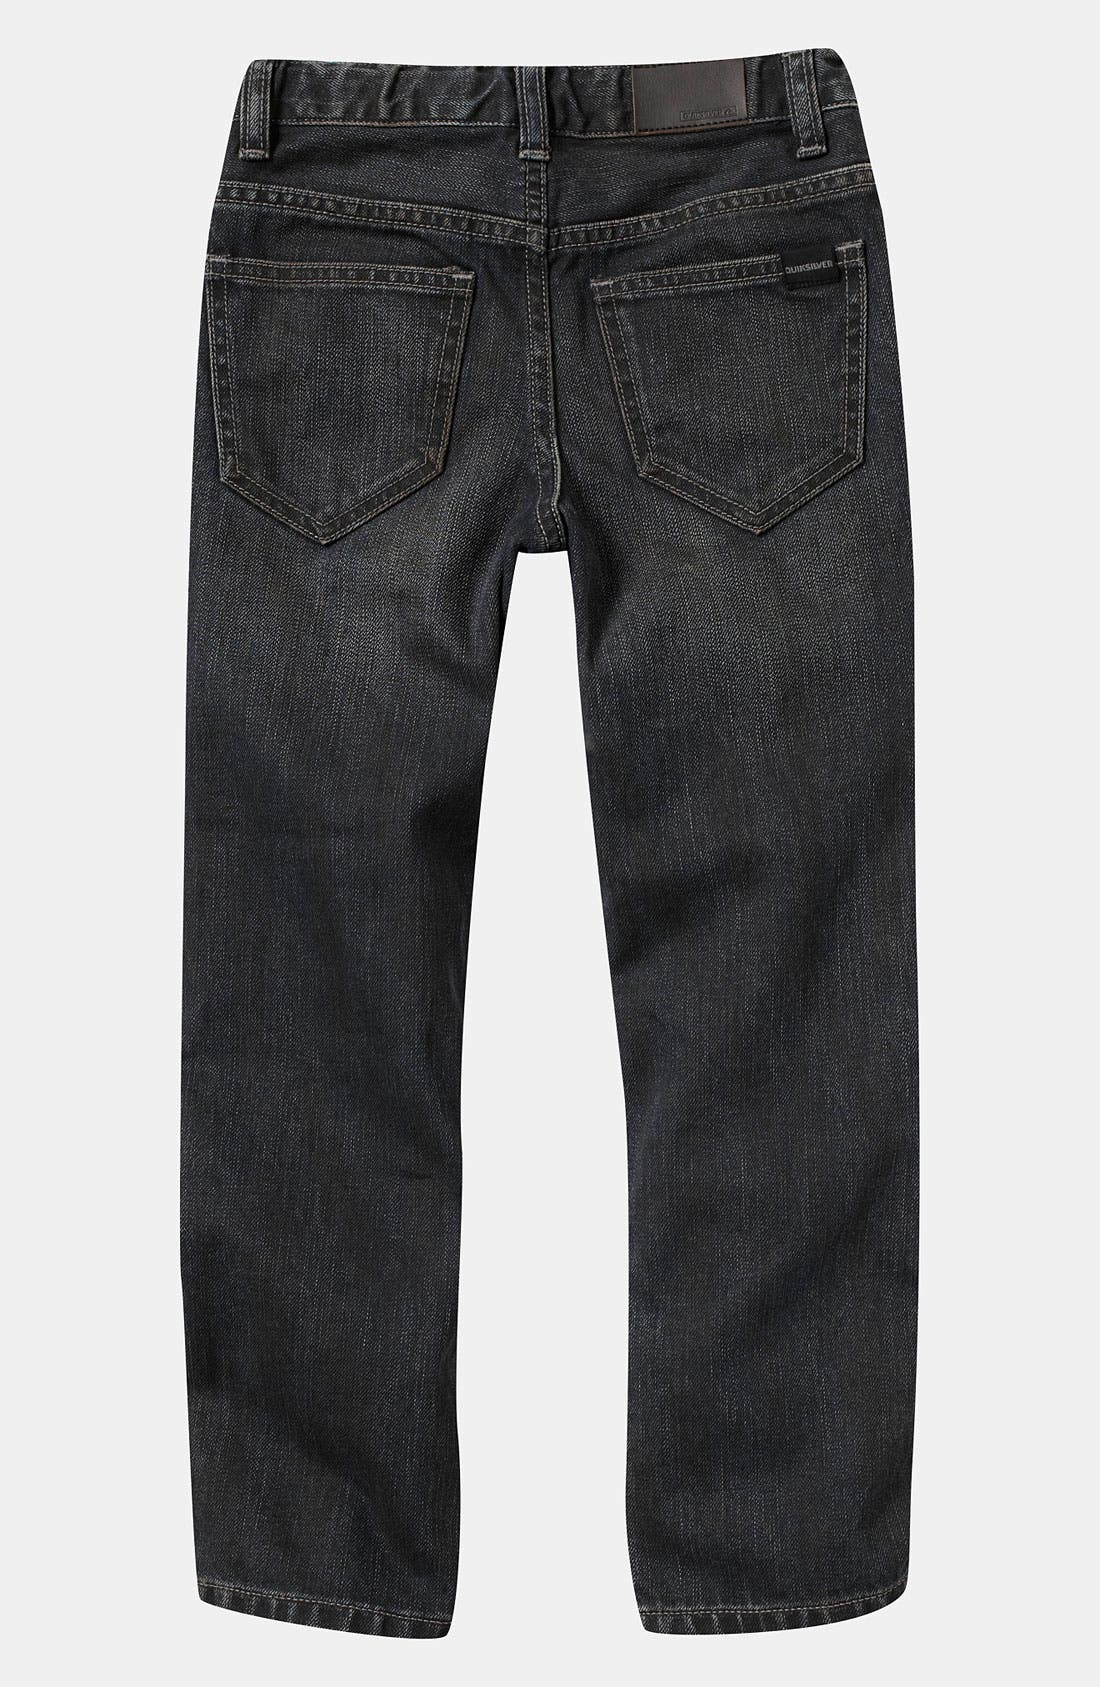 Main Image - Quiksilver 'Revolver' Jeans (Toddler)